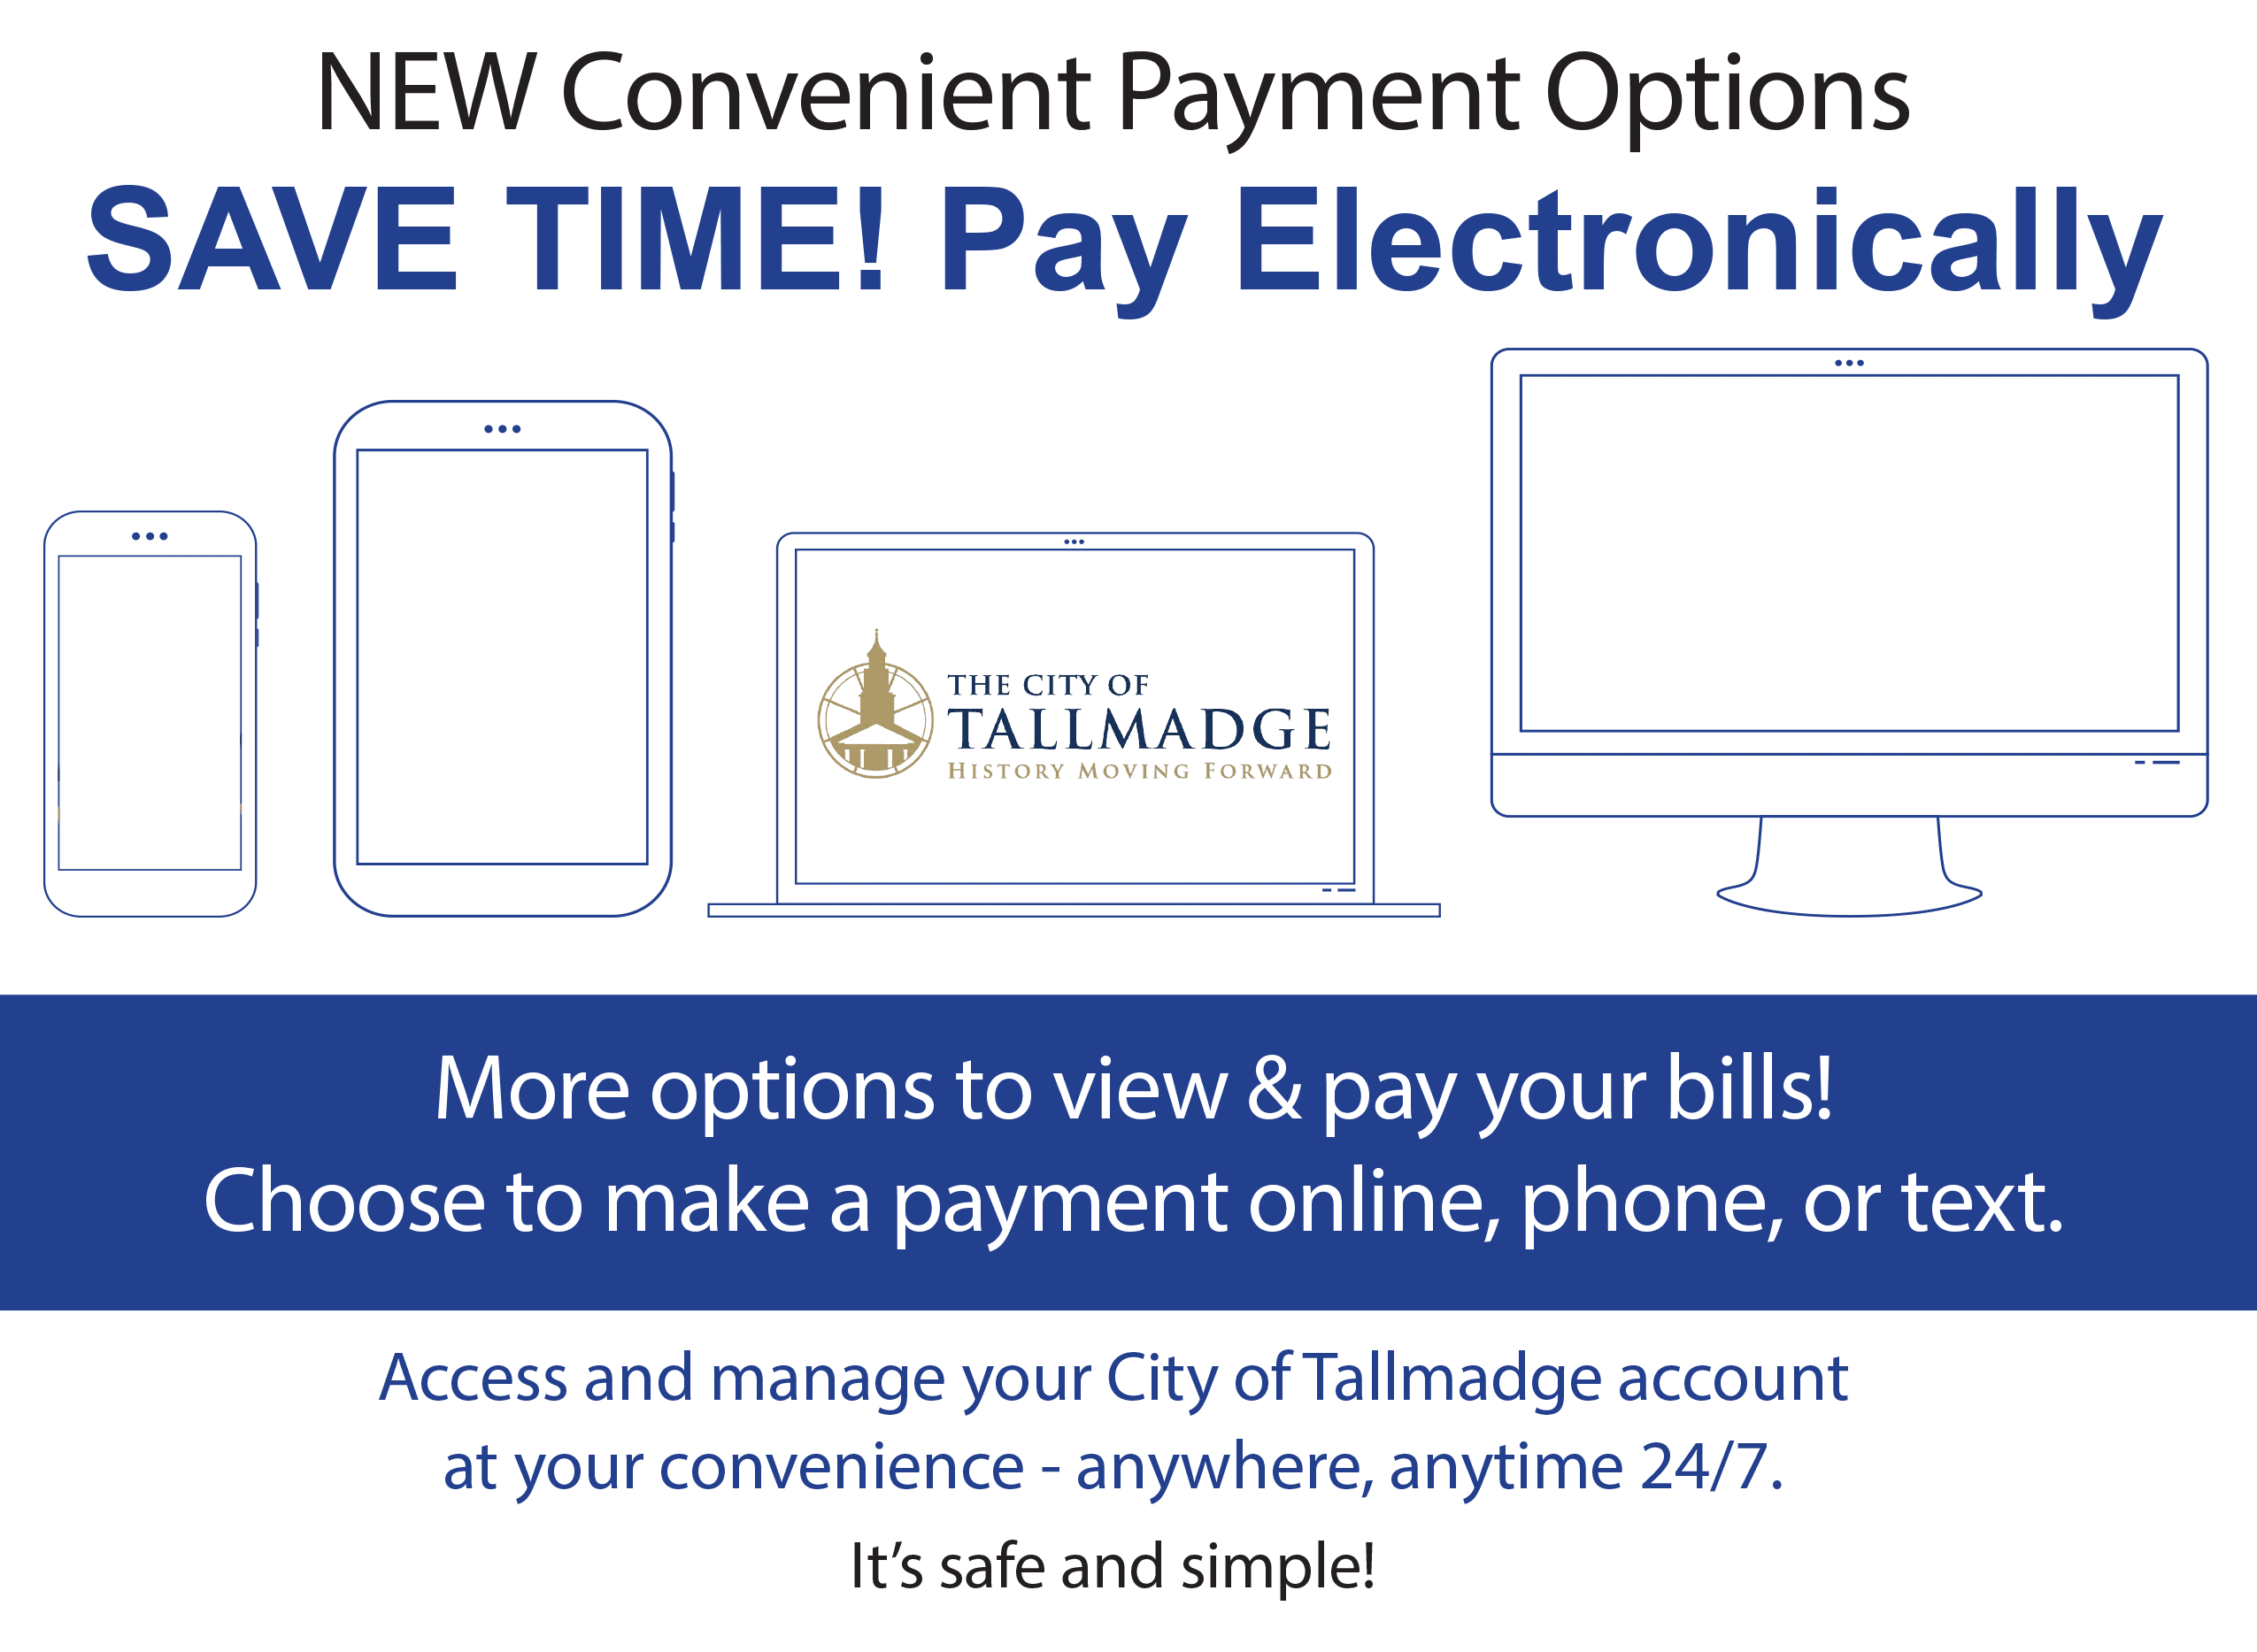 New Online Payment Options